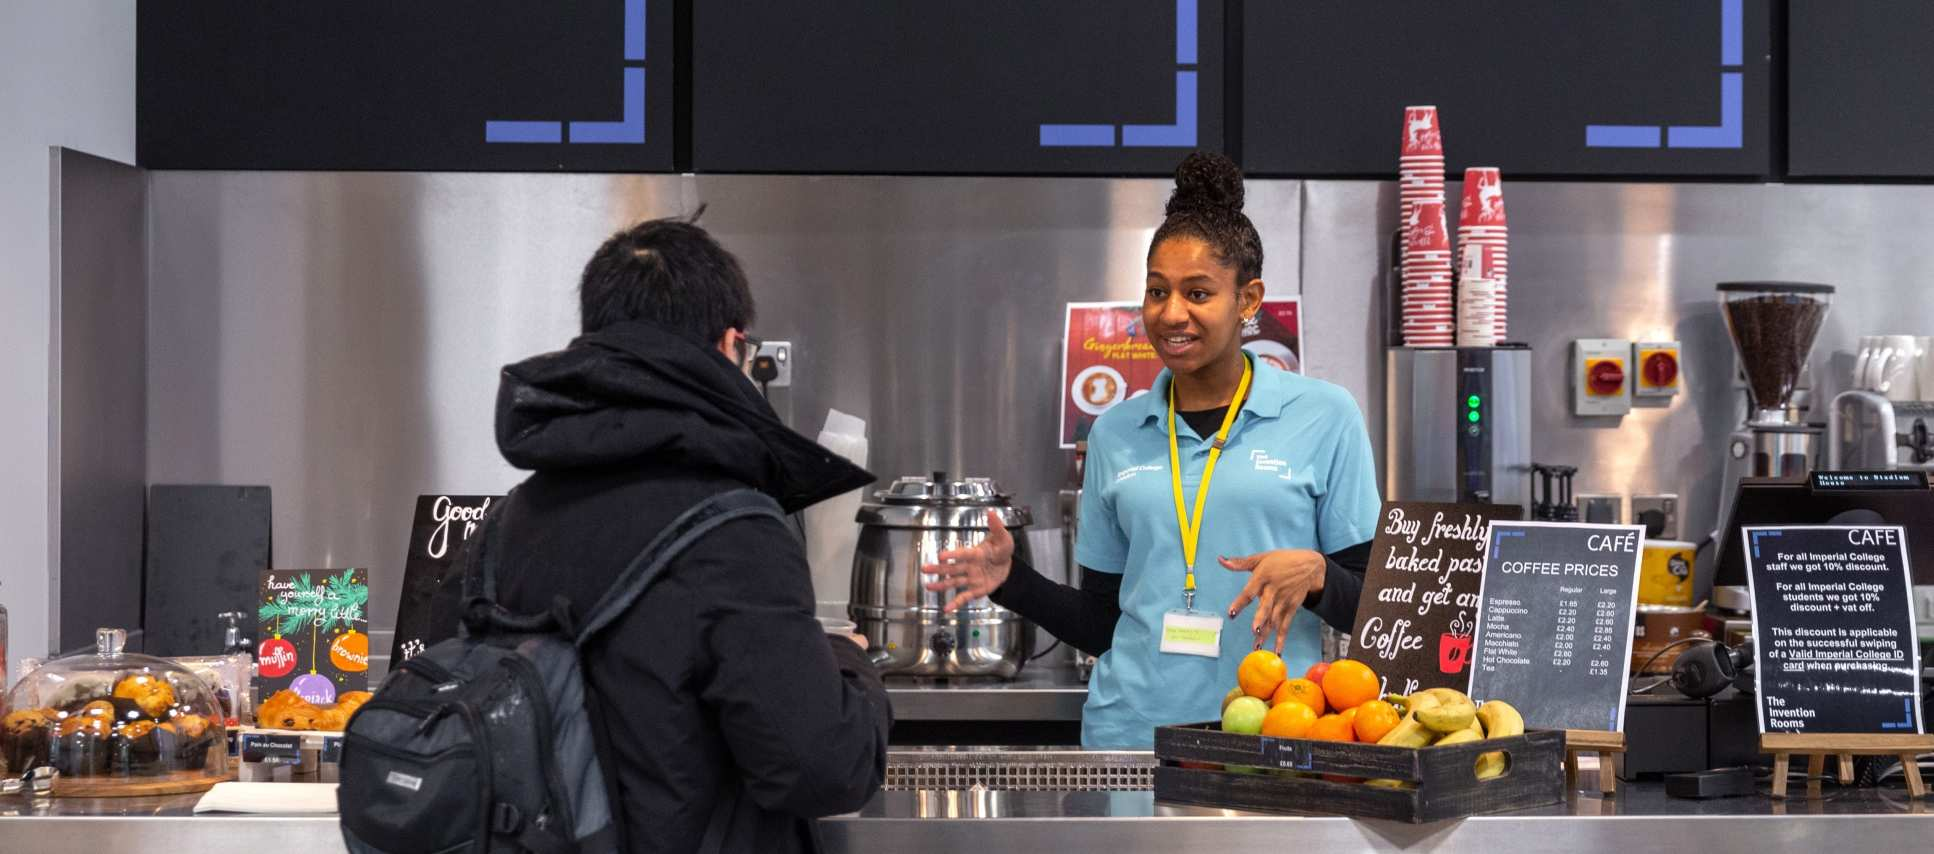 Food And Drink About Imperial College London